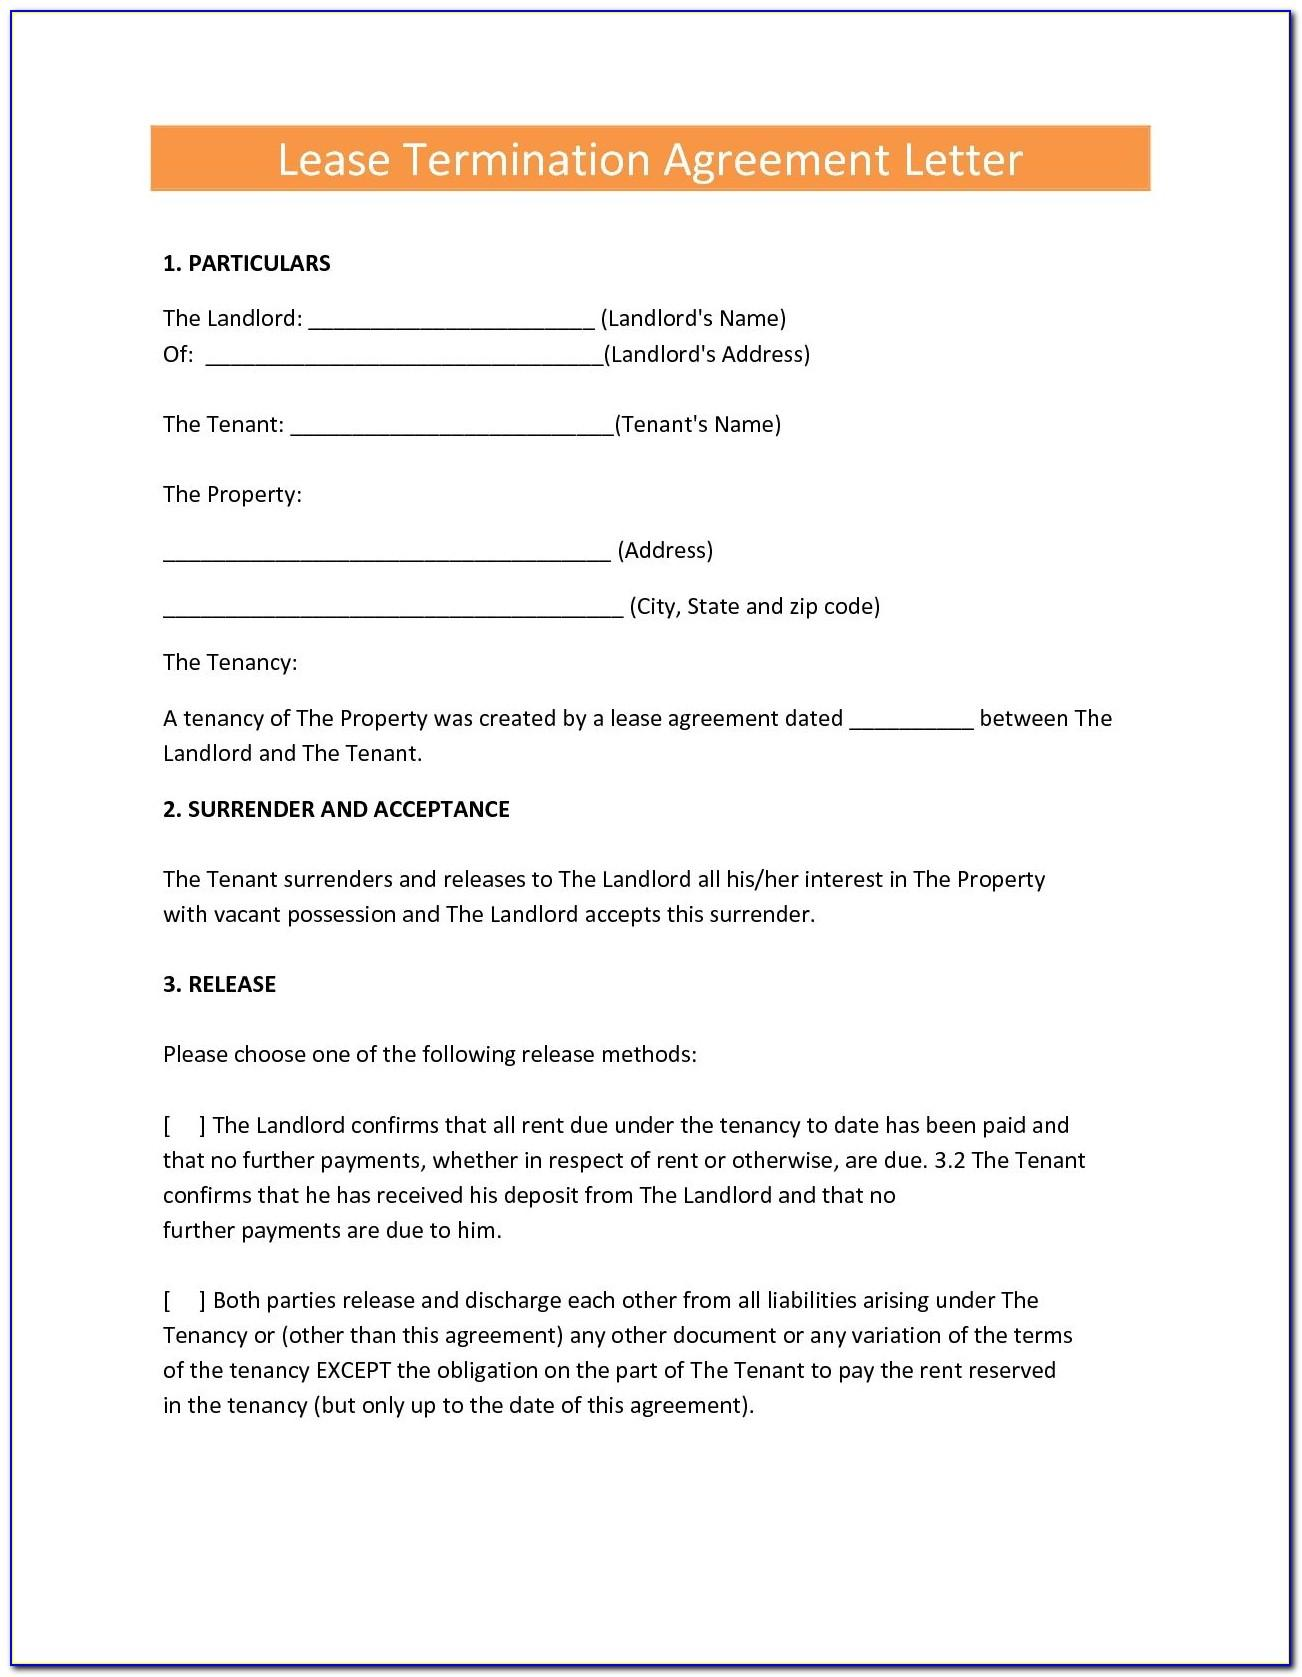 Sample Commercial Lease Termination Letter From Tenant To Landlord